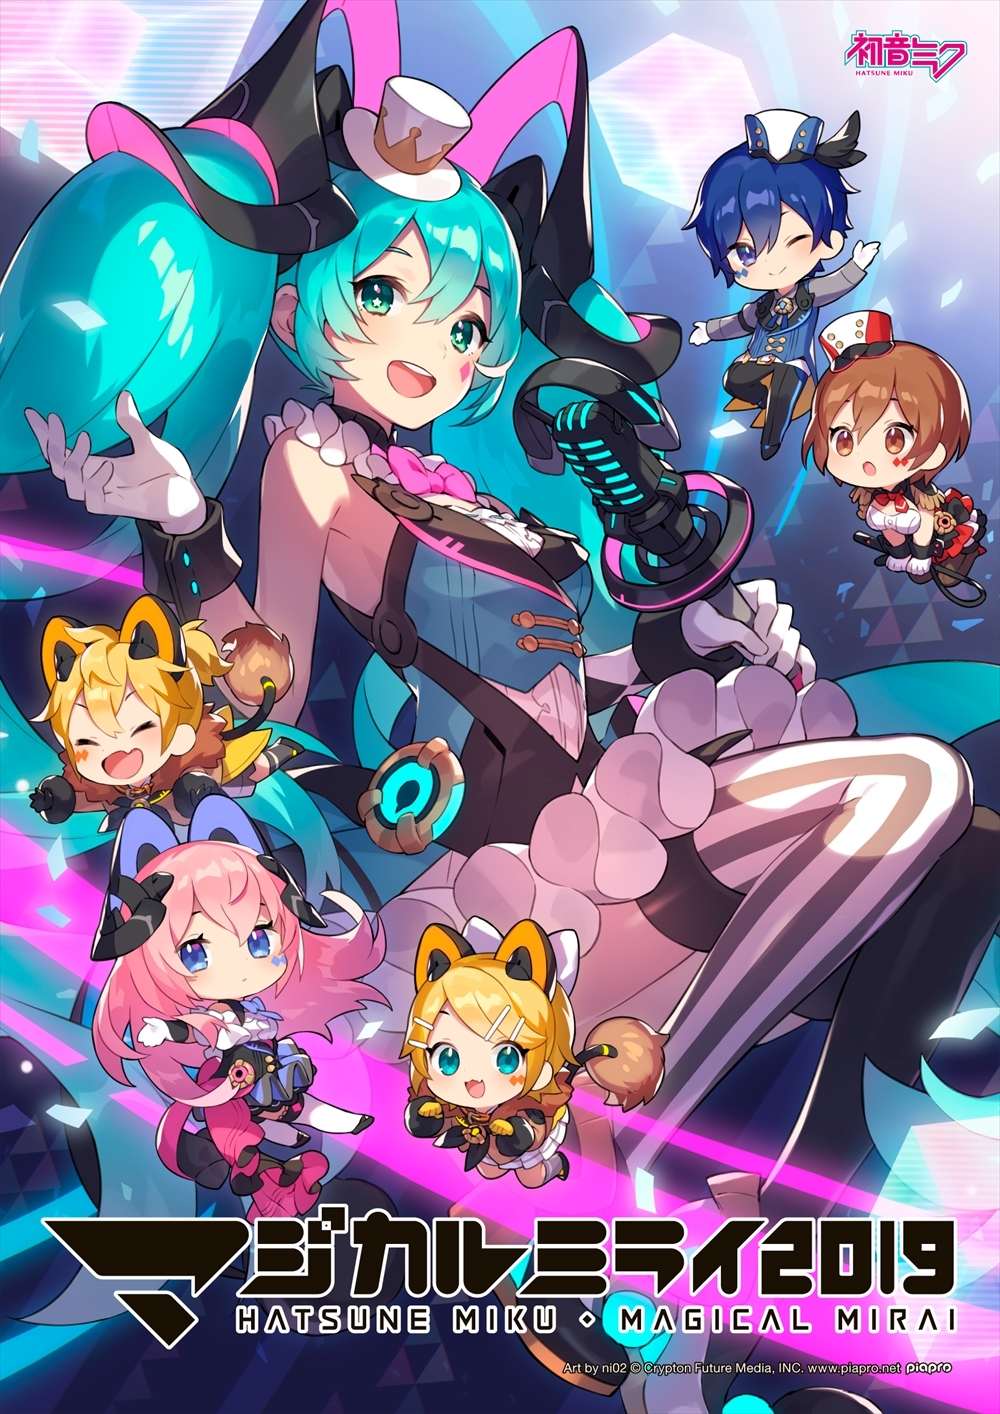 「マジカルミライ 2019」Blu-ray&DVDパッケージ  Art by ni02 (C)Crypton Future Media, INC. www.piapro.net